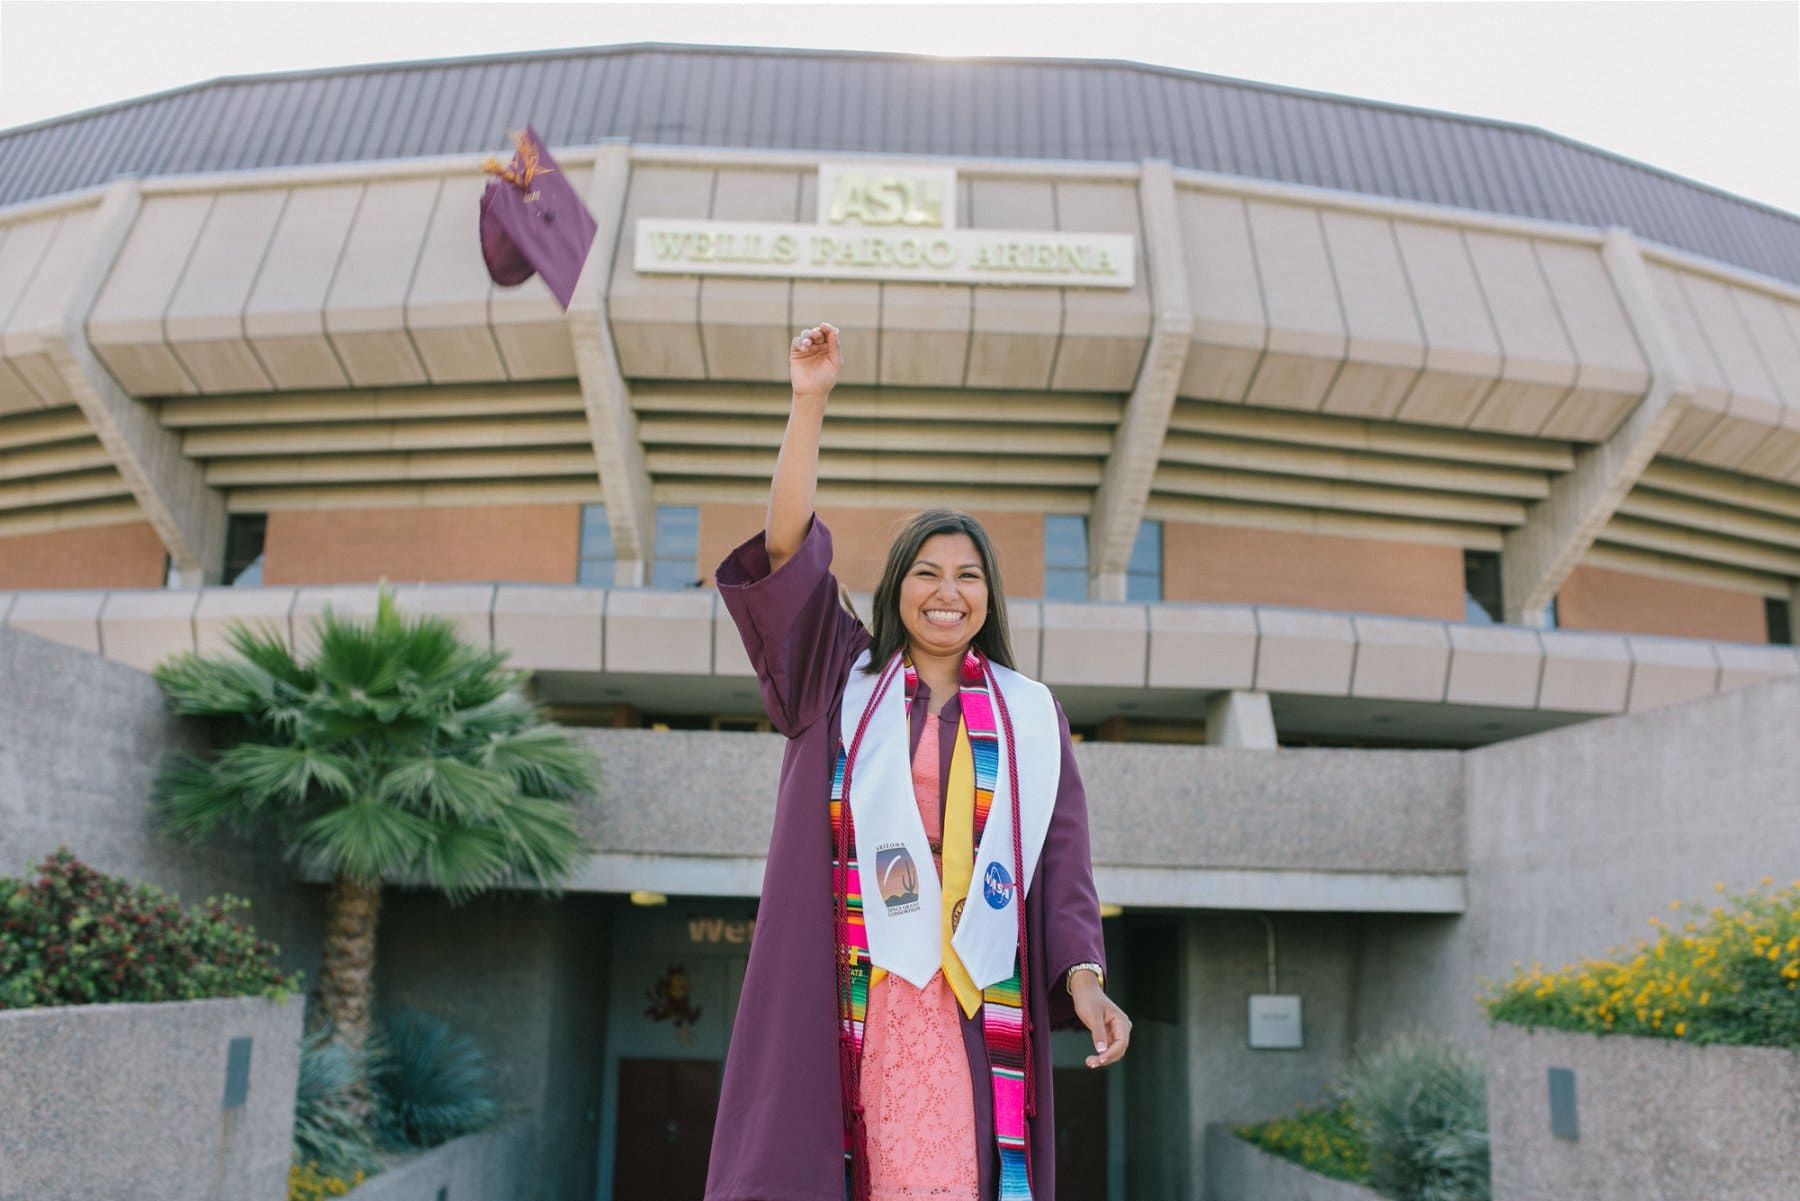 ASU college graduate photos